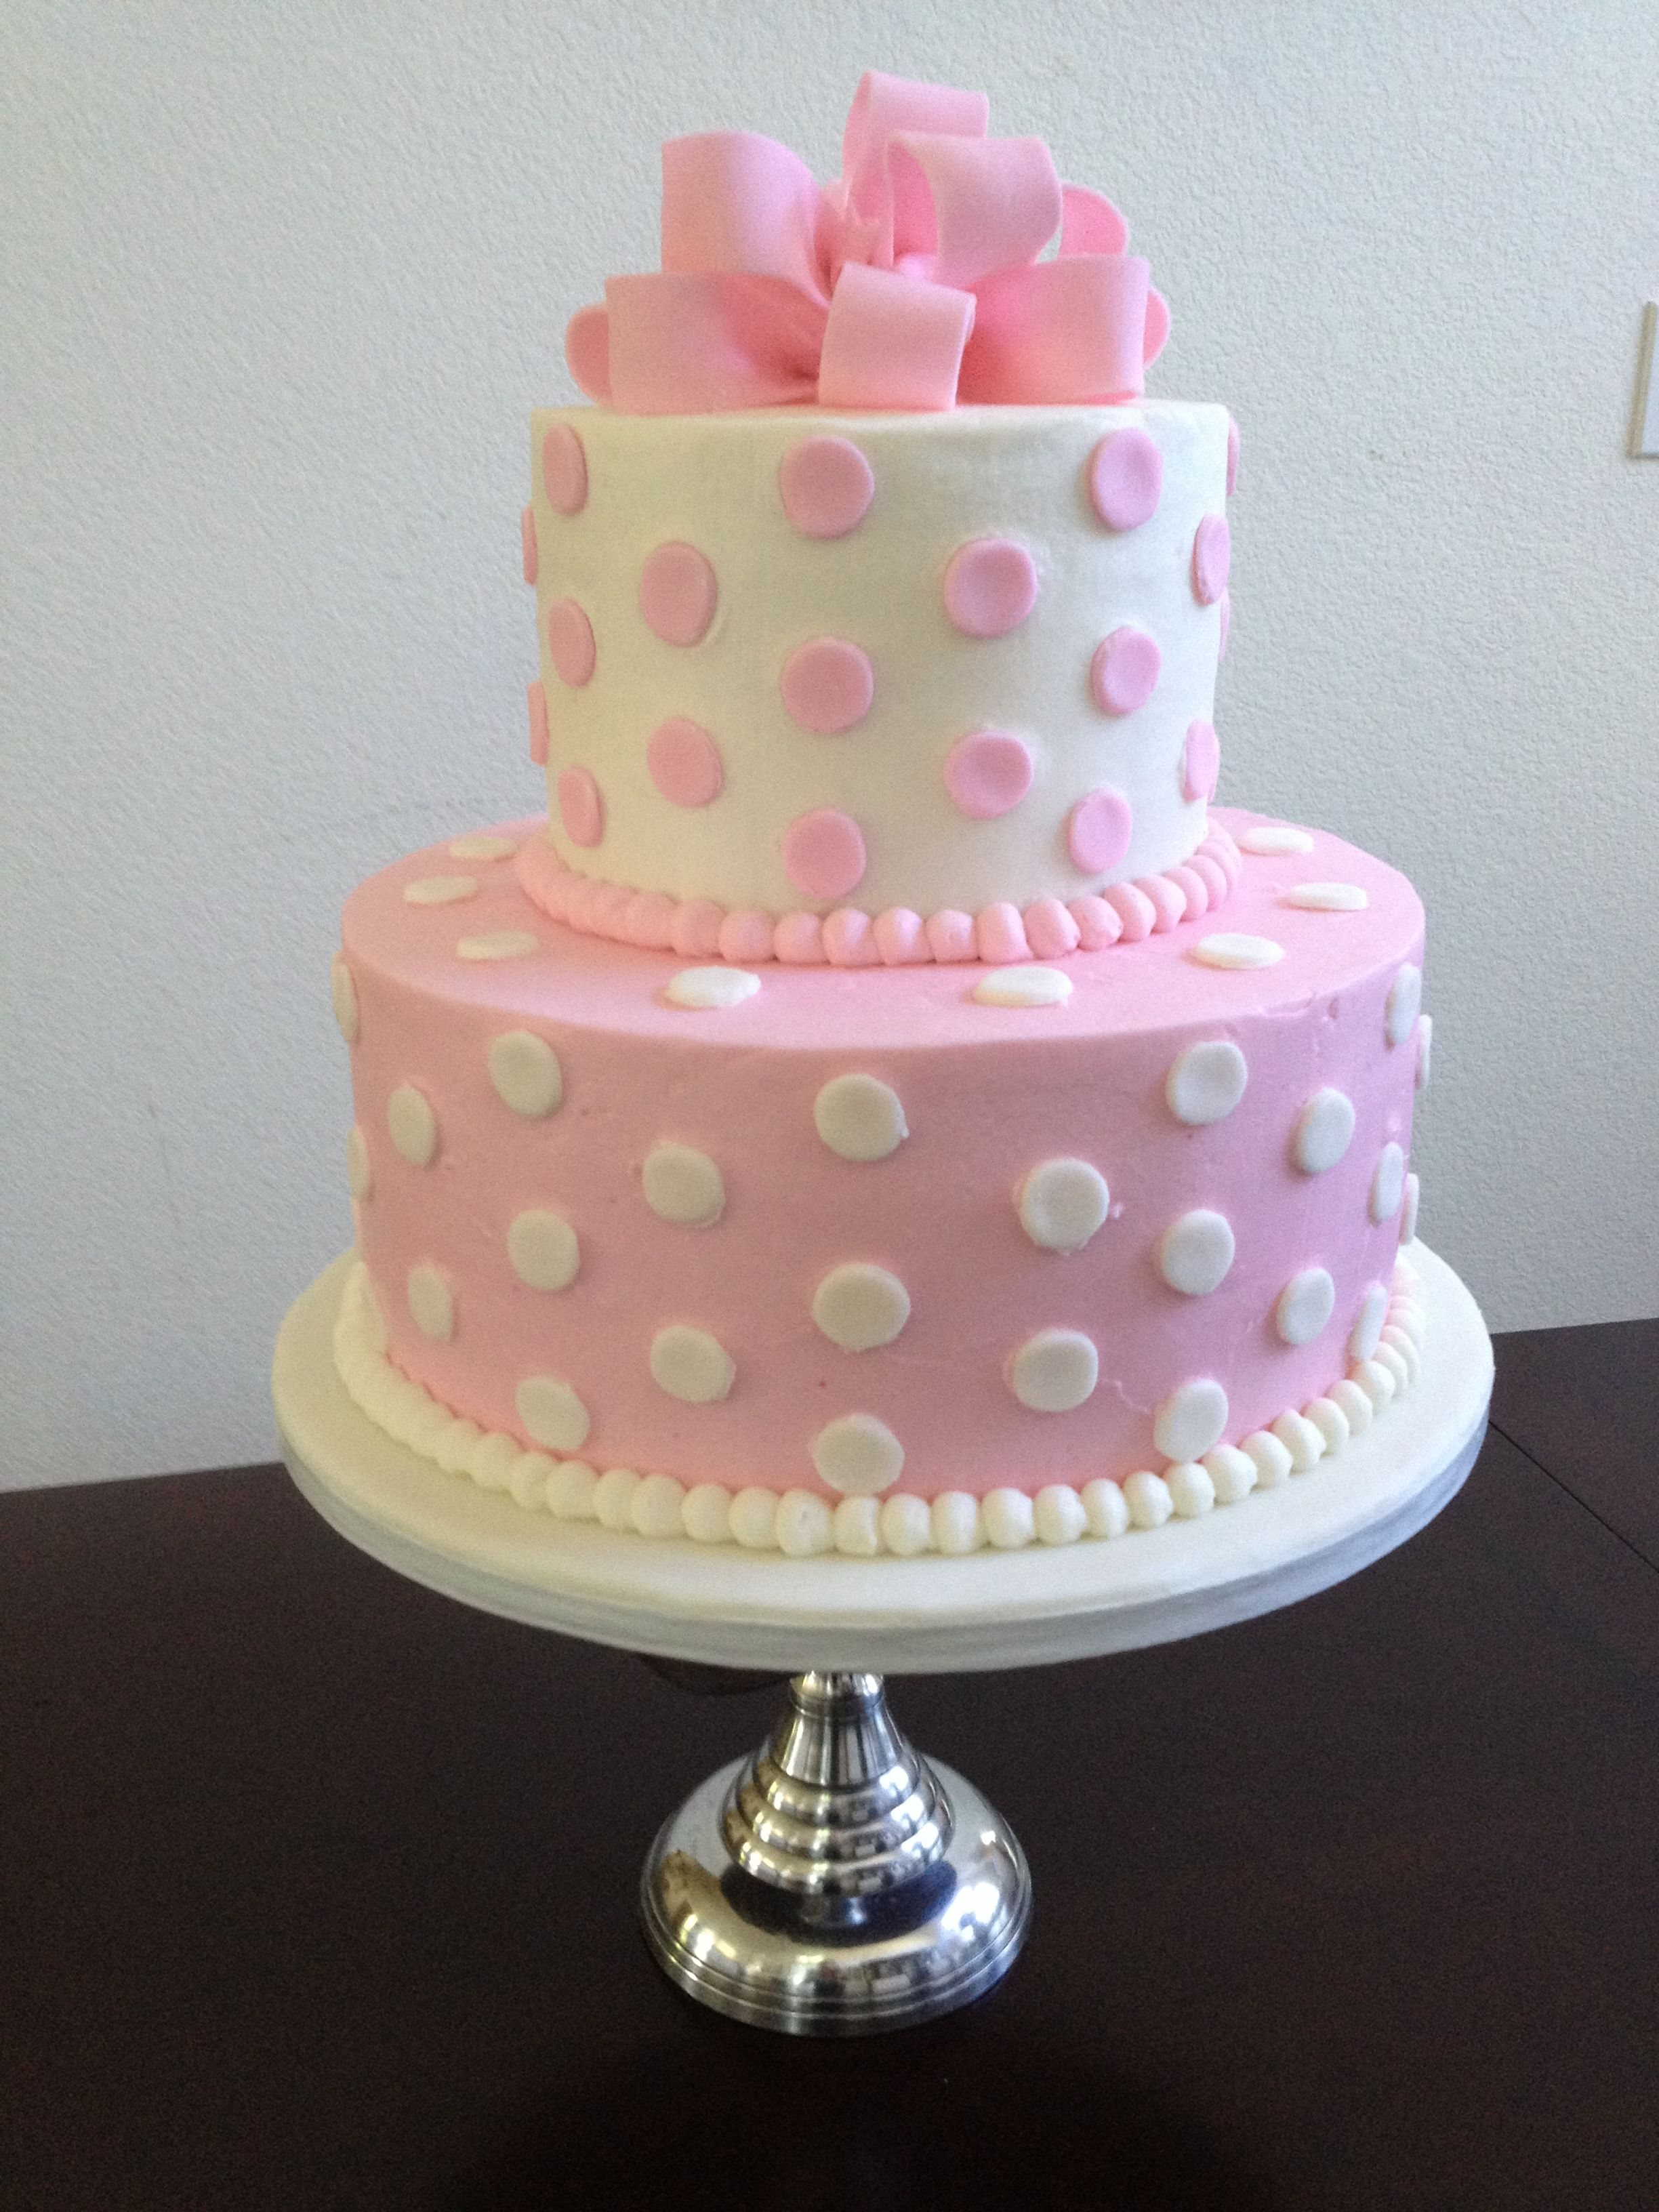 Cake Decorating Polka Dots : Polka Dot Present Cake - Buttercream with fondant accents ...